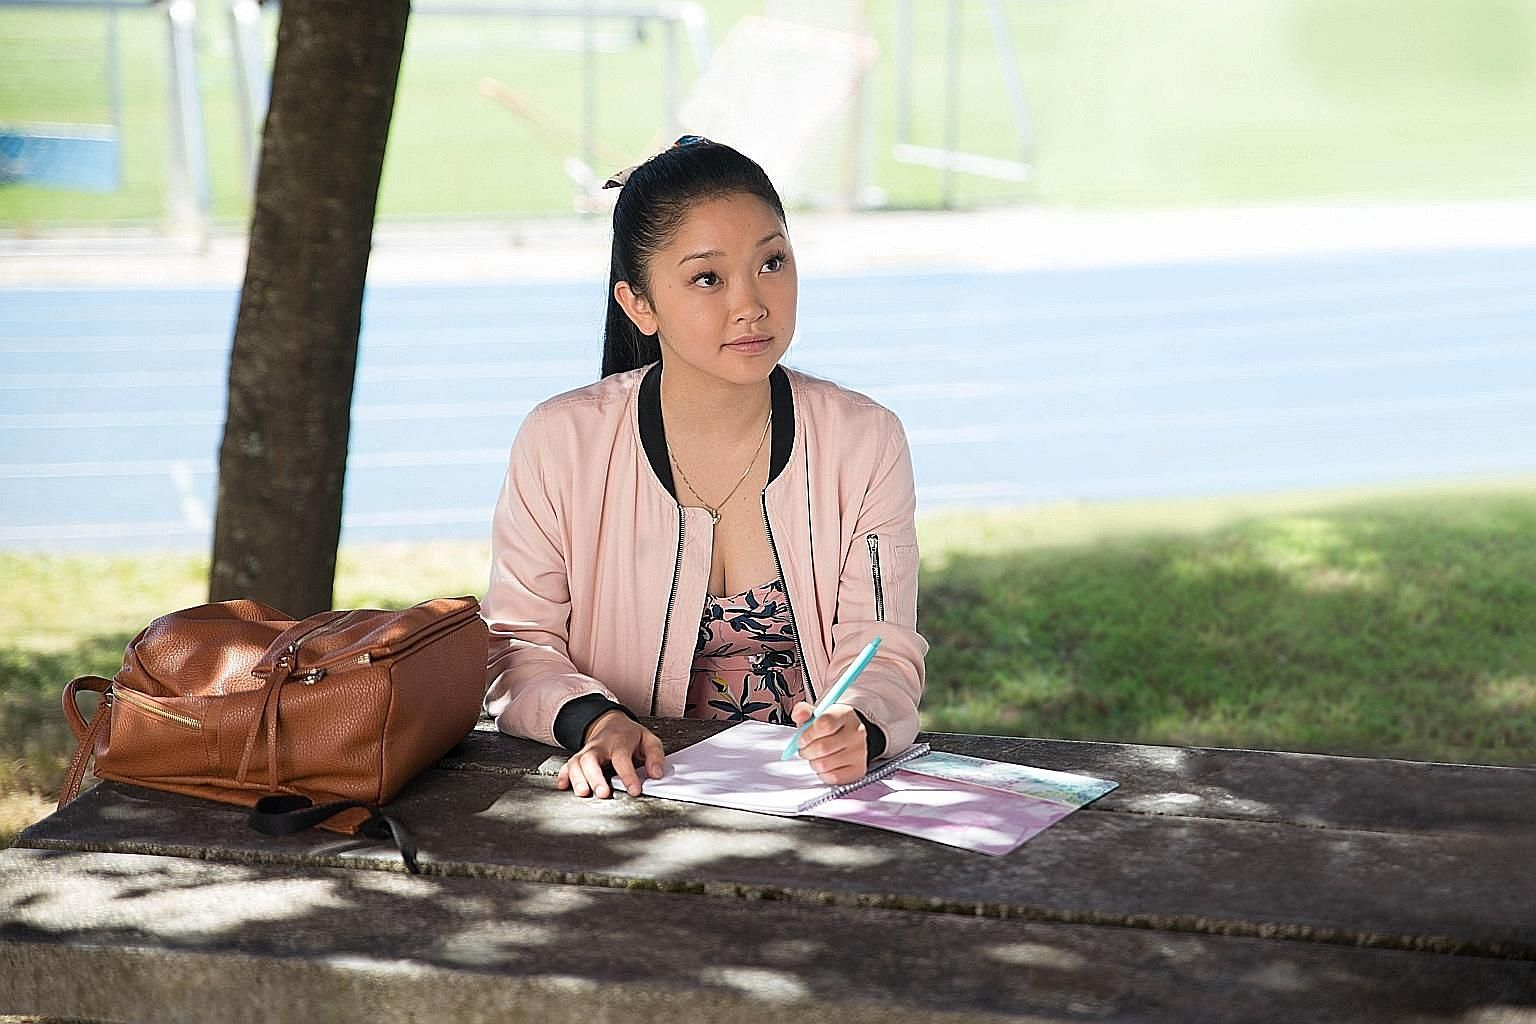 Lara Jean's (Lana Condor) love letters to her crushes, which she never intended to send, are suddenly delivered to them in To All The Boys I've Loved Before.